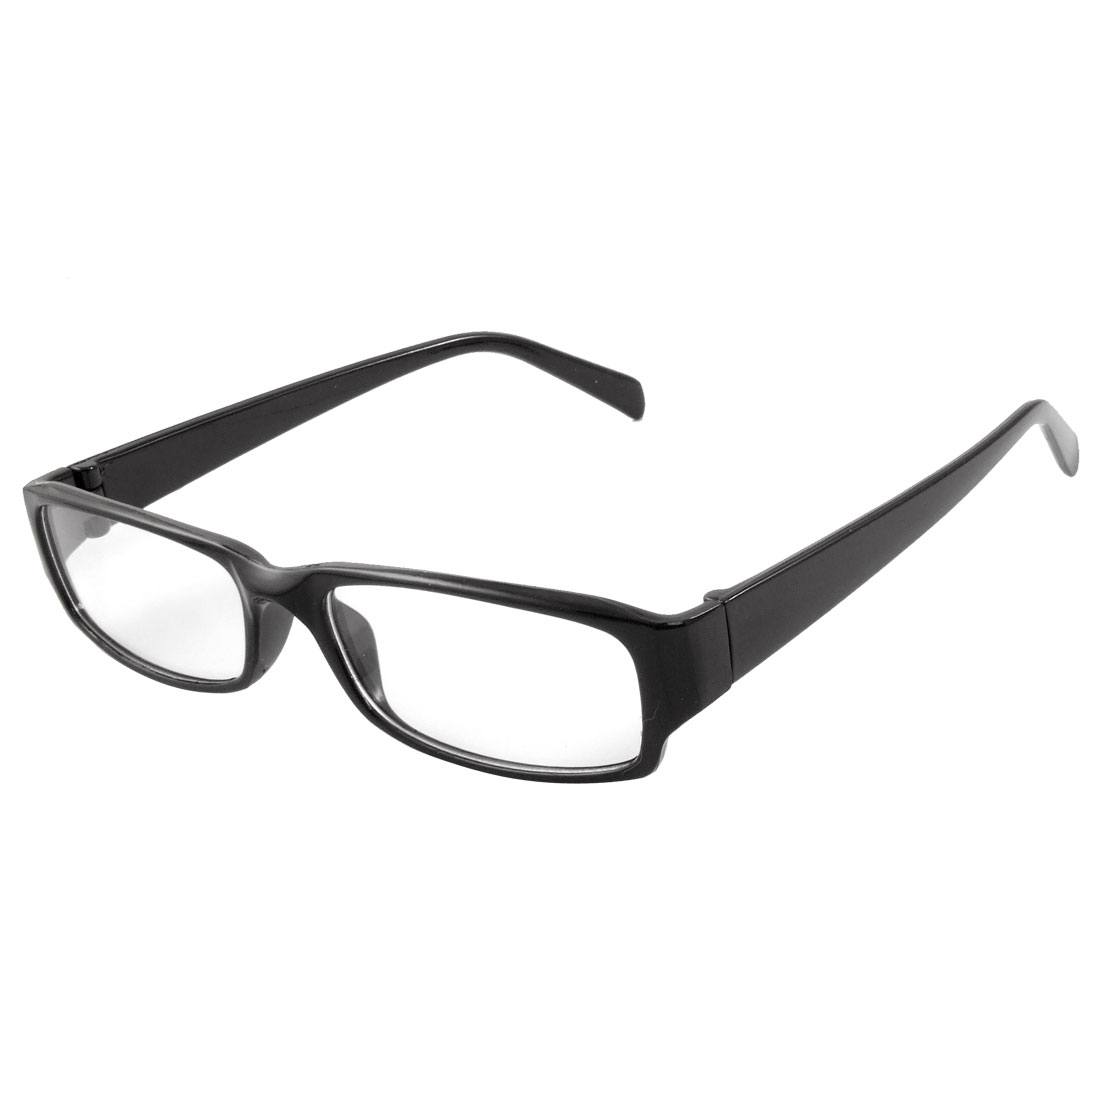 Ladies Black Wide Arm Full Rim Rectangle Lens Plain Glasses Eyeglass